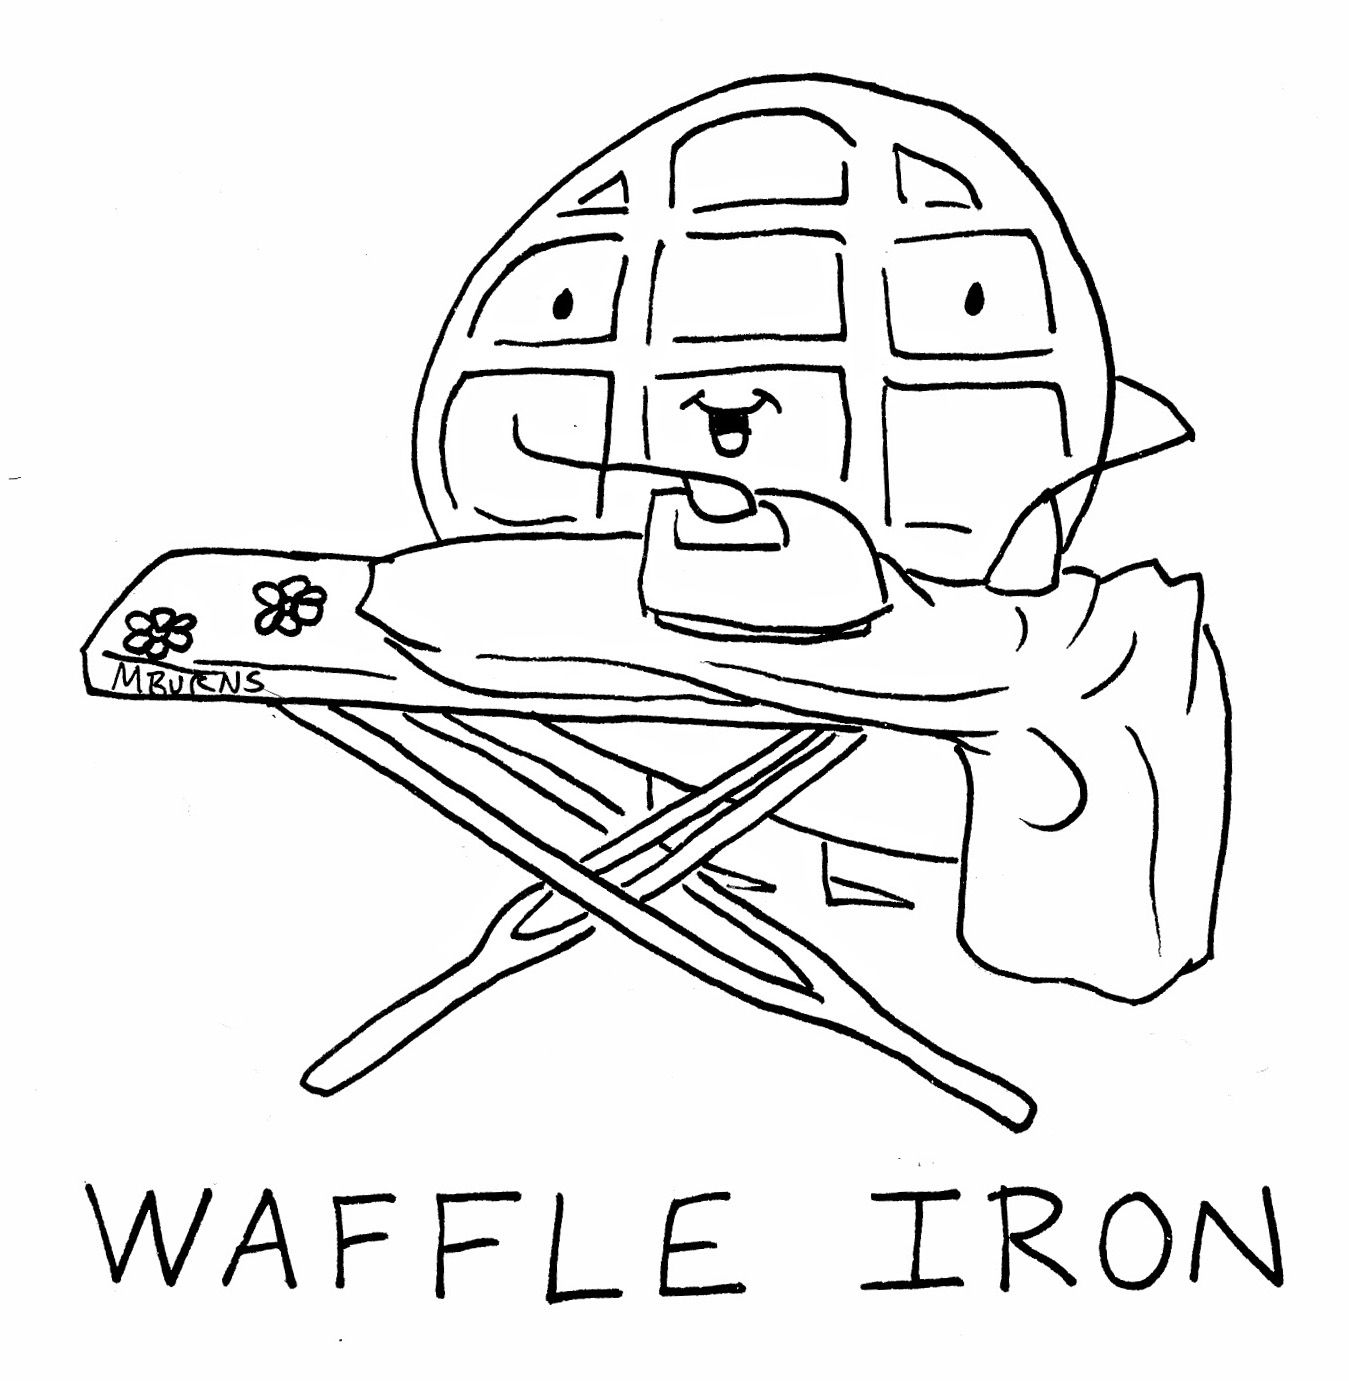 waffle coloring page waffles coloring sheets yahoo image search results with waffle page coloring